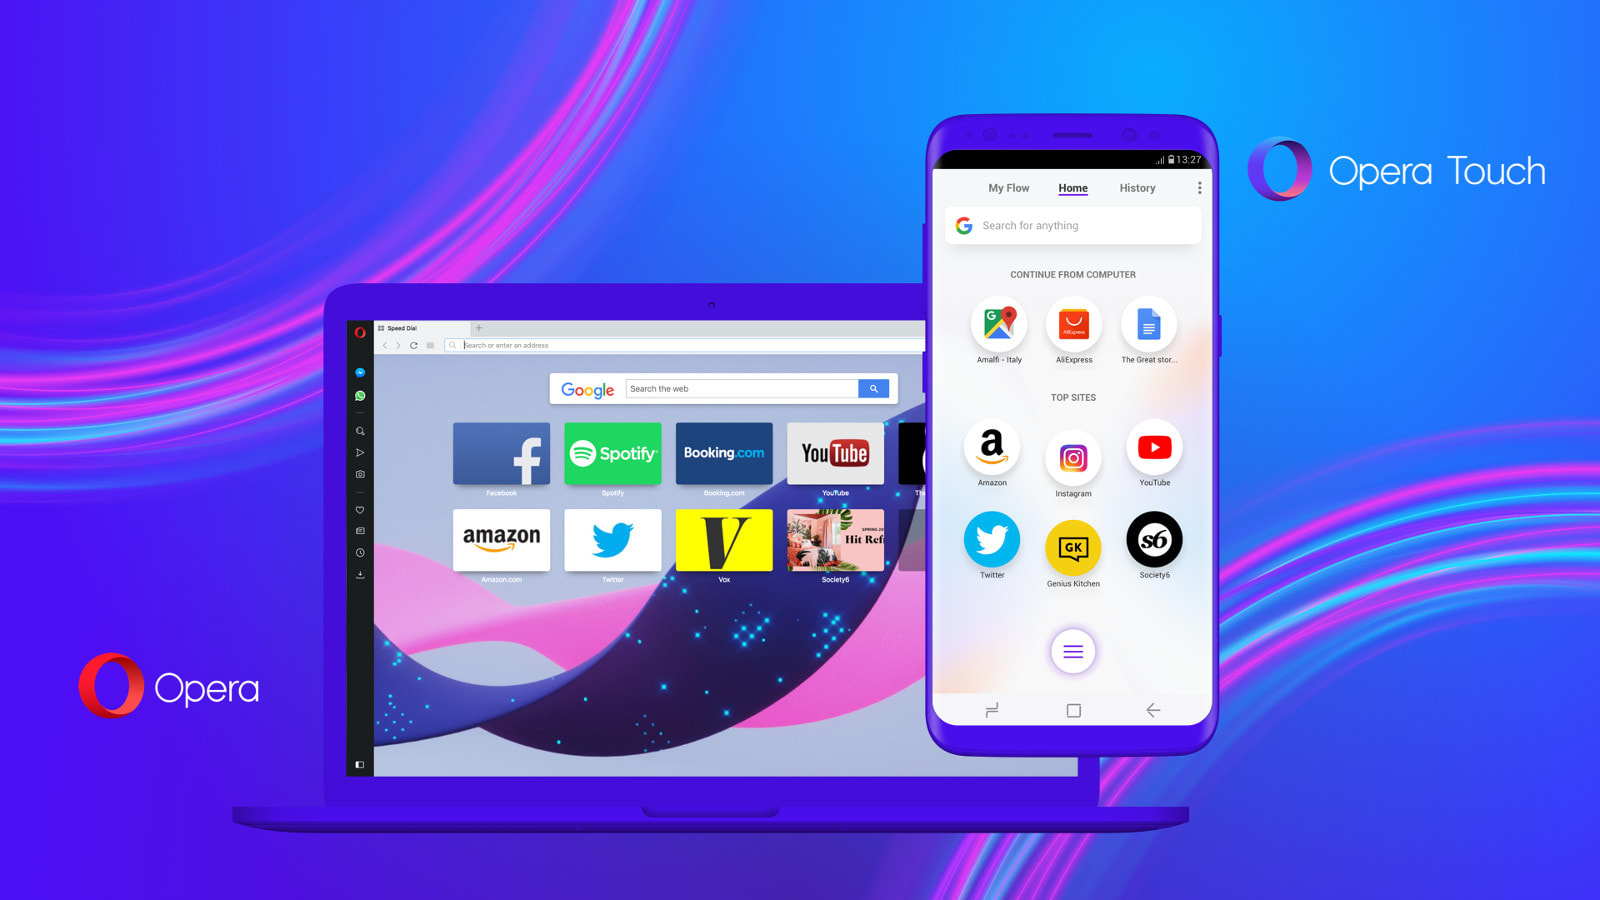 Opera's 'Flow' keeps its new mobile and desktop browsers synced